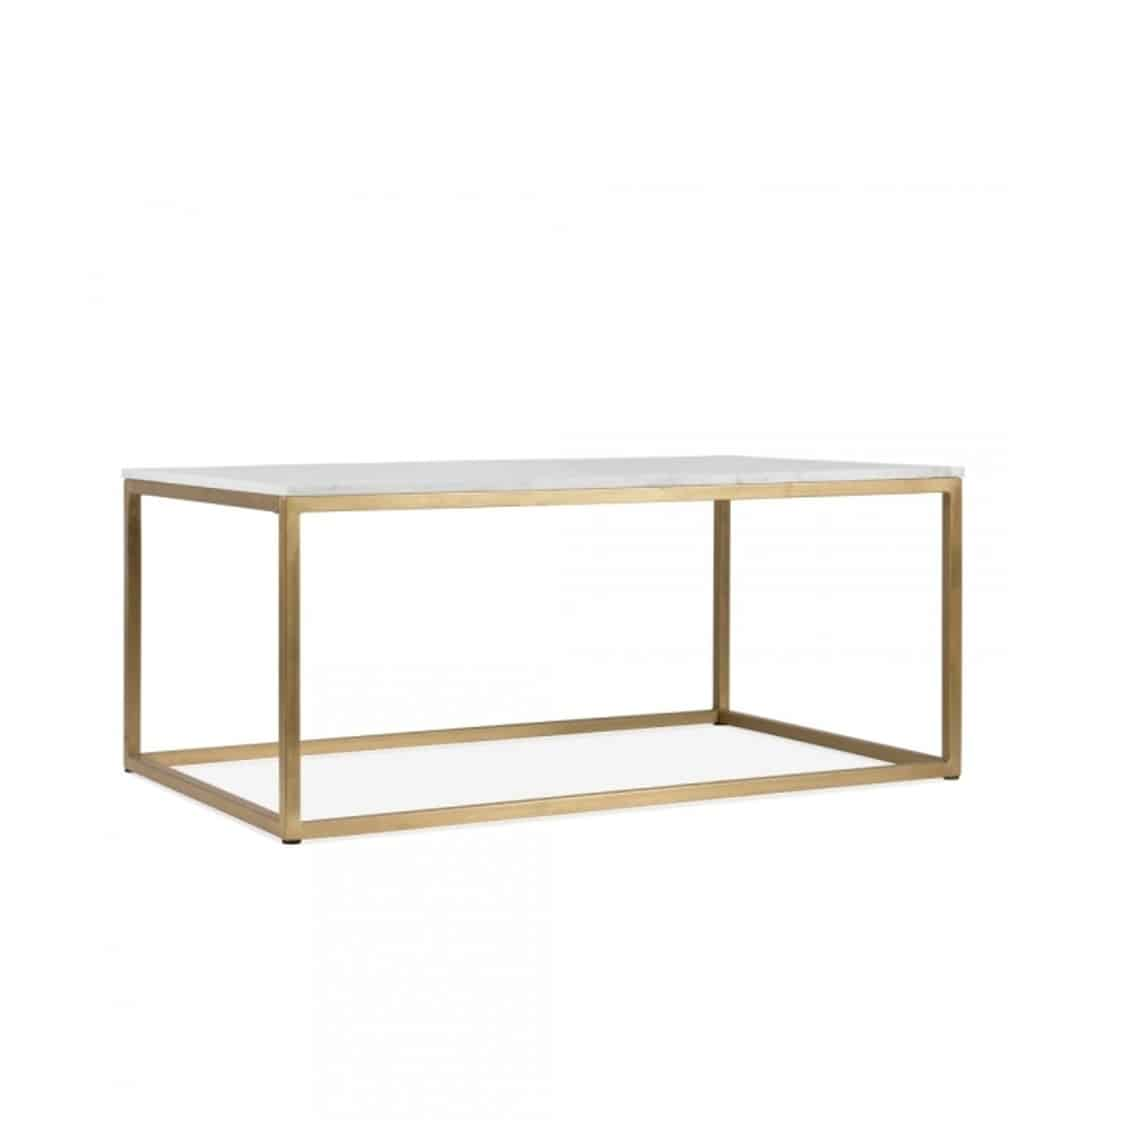 Fountain coffee table R DeFrae Contract Furniture brass frame 2